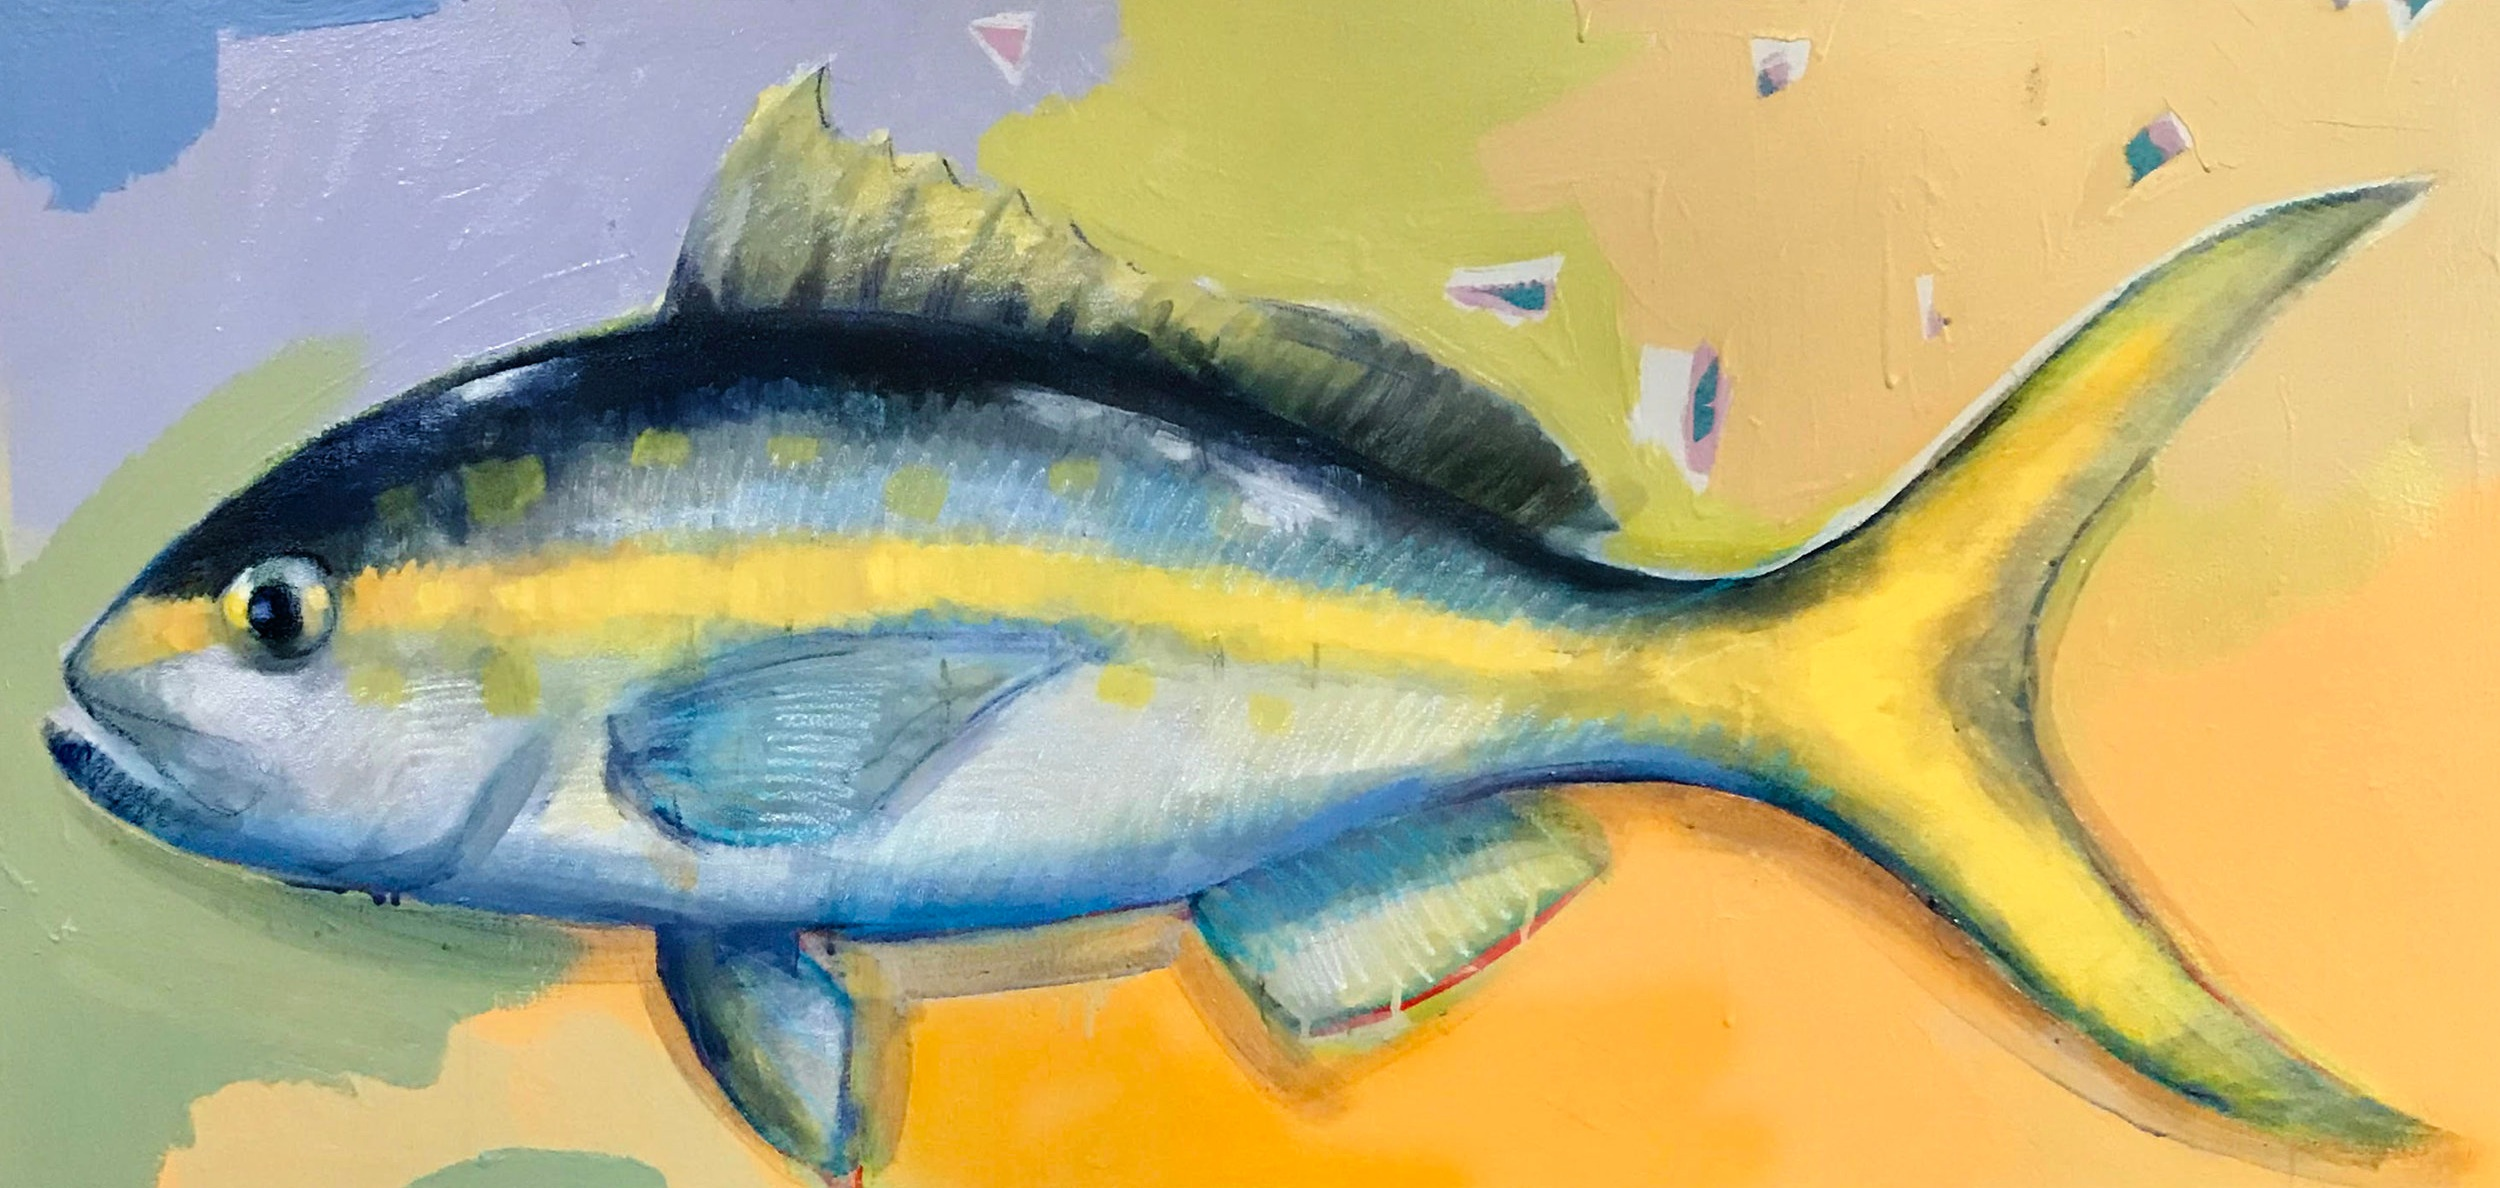 TIM JAEGER, YELLOW TAIL SNAPPER, 2018